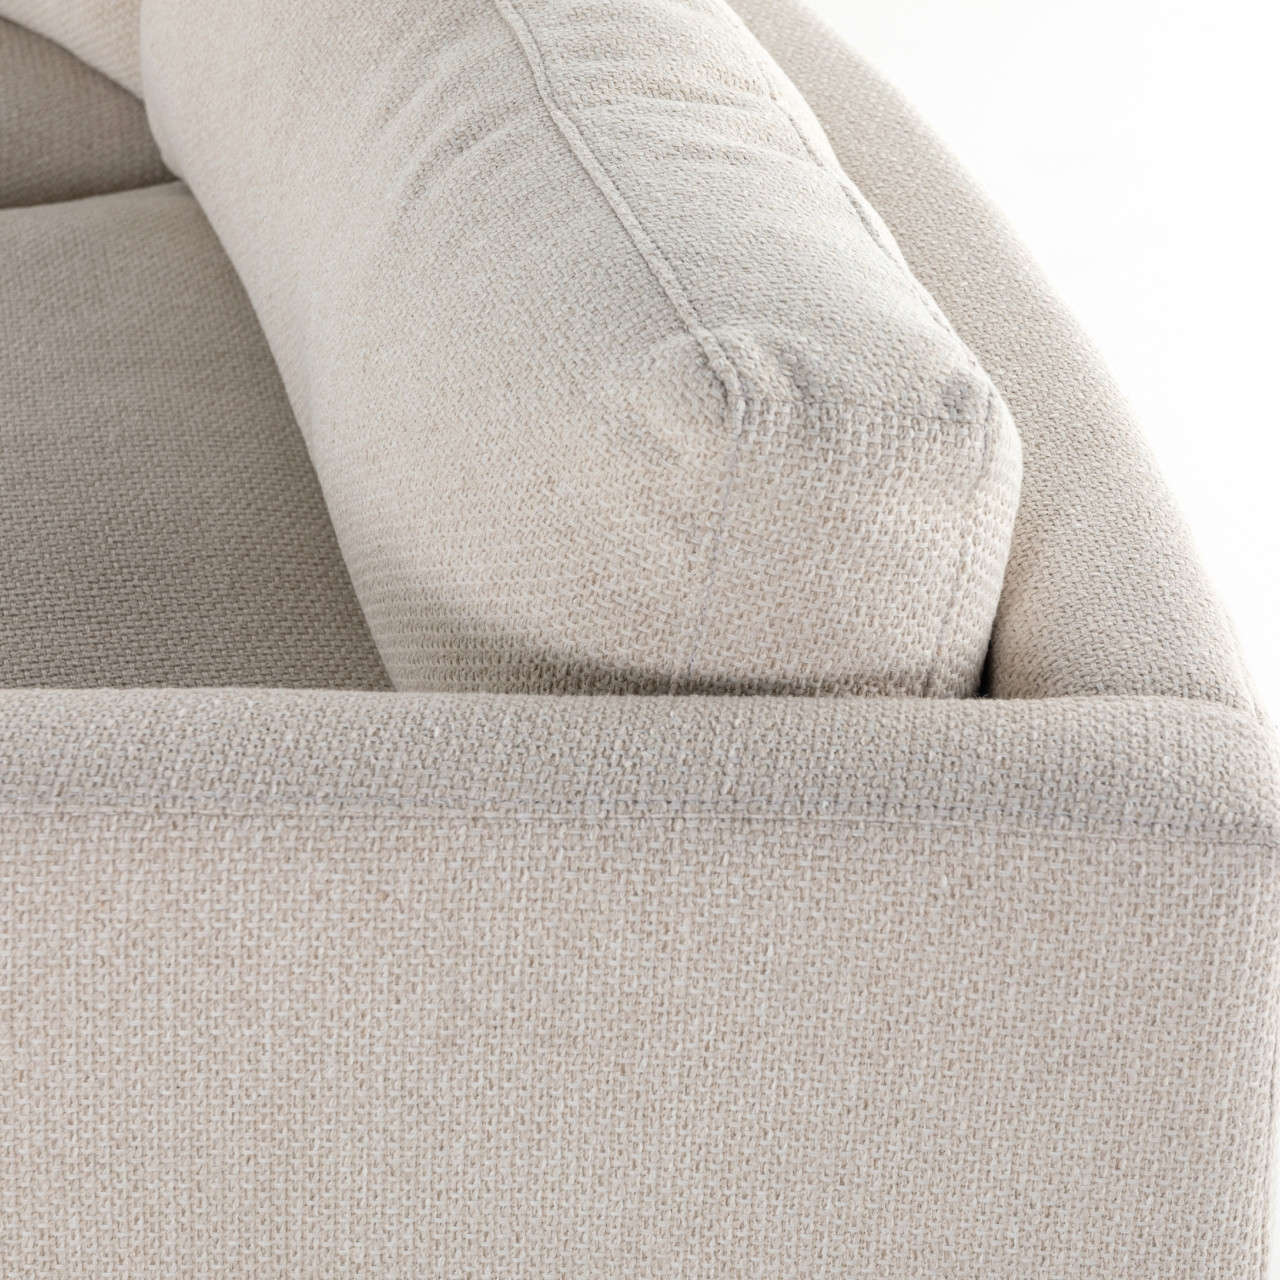 Hillers 3-pc Sectional - Tacoma Ivory